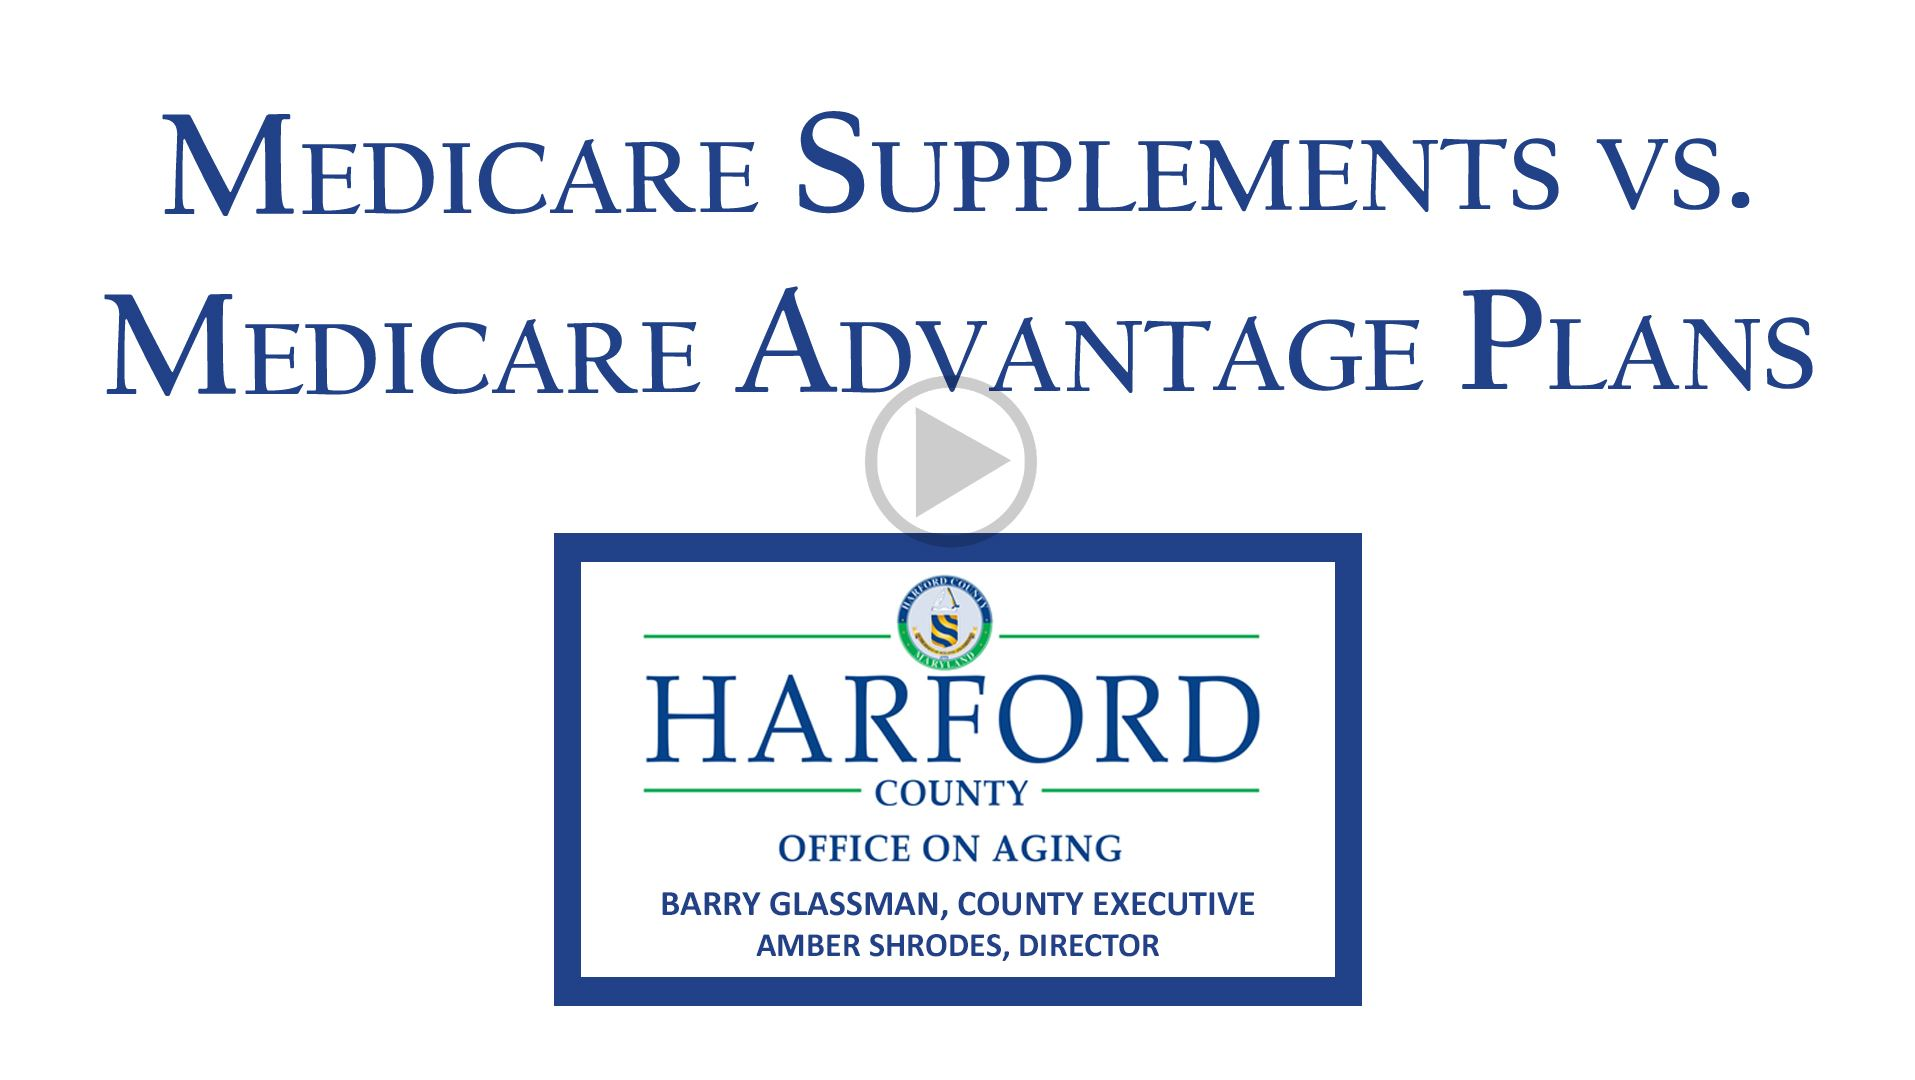 Medicare Supplements vs Medicare Advantage Plans Video Button